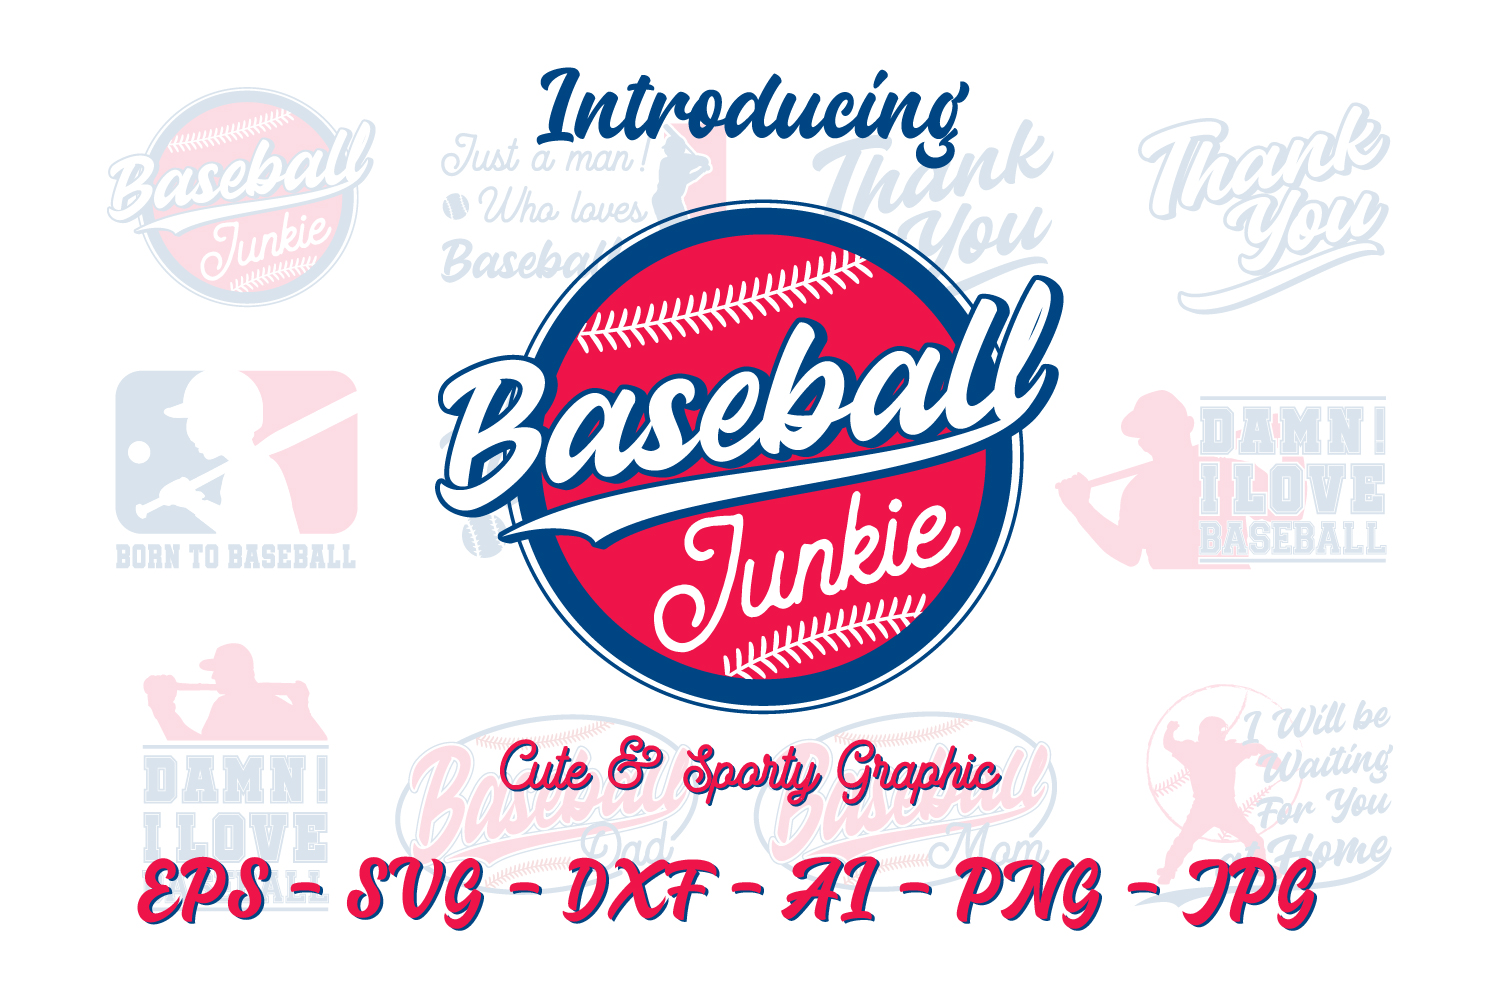 Download Free Cute Sporty Graphic Baseball Edition Graphic By Din Studio for Cricut Explore, Silhouette and other cutting machines.